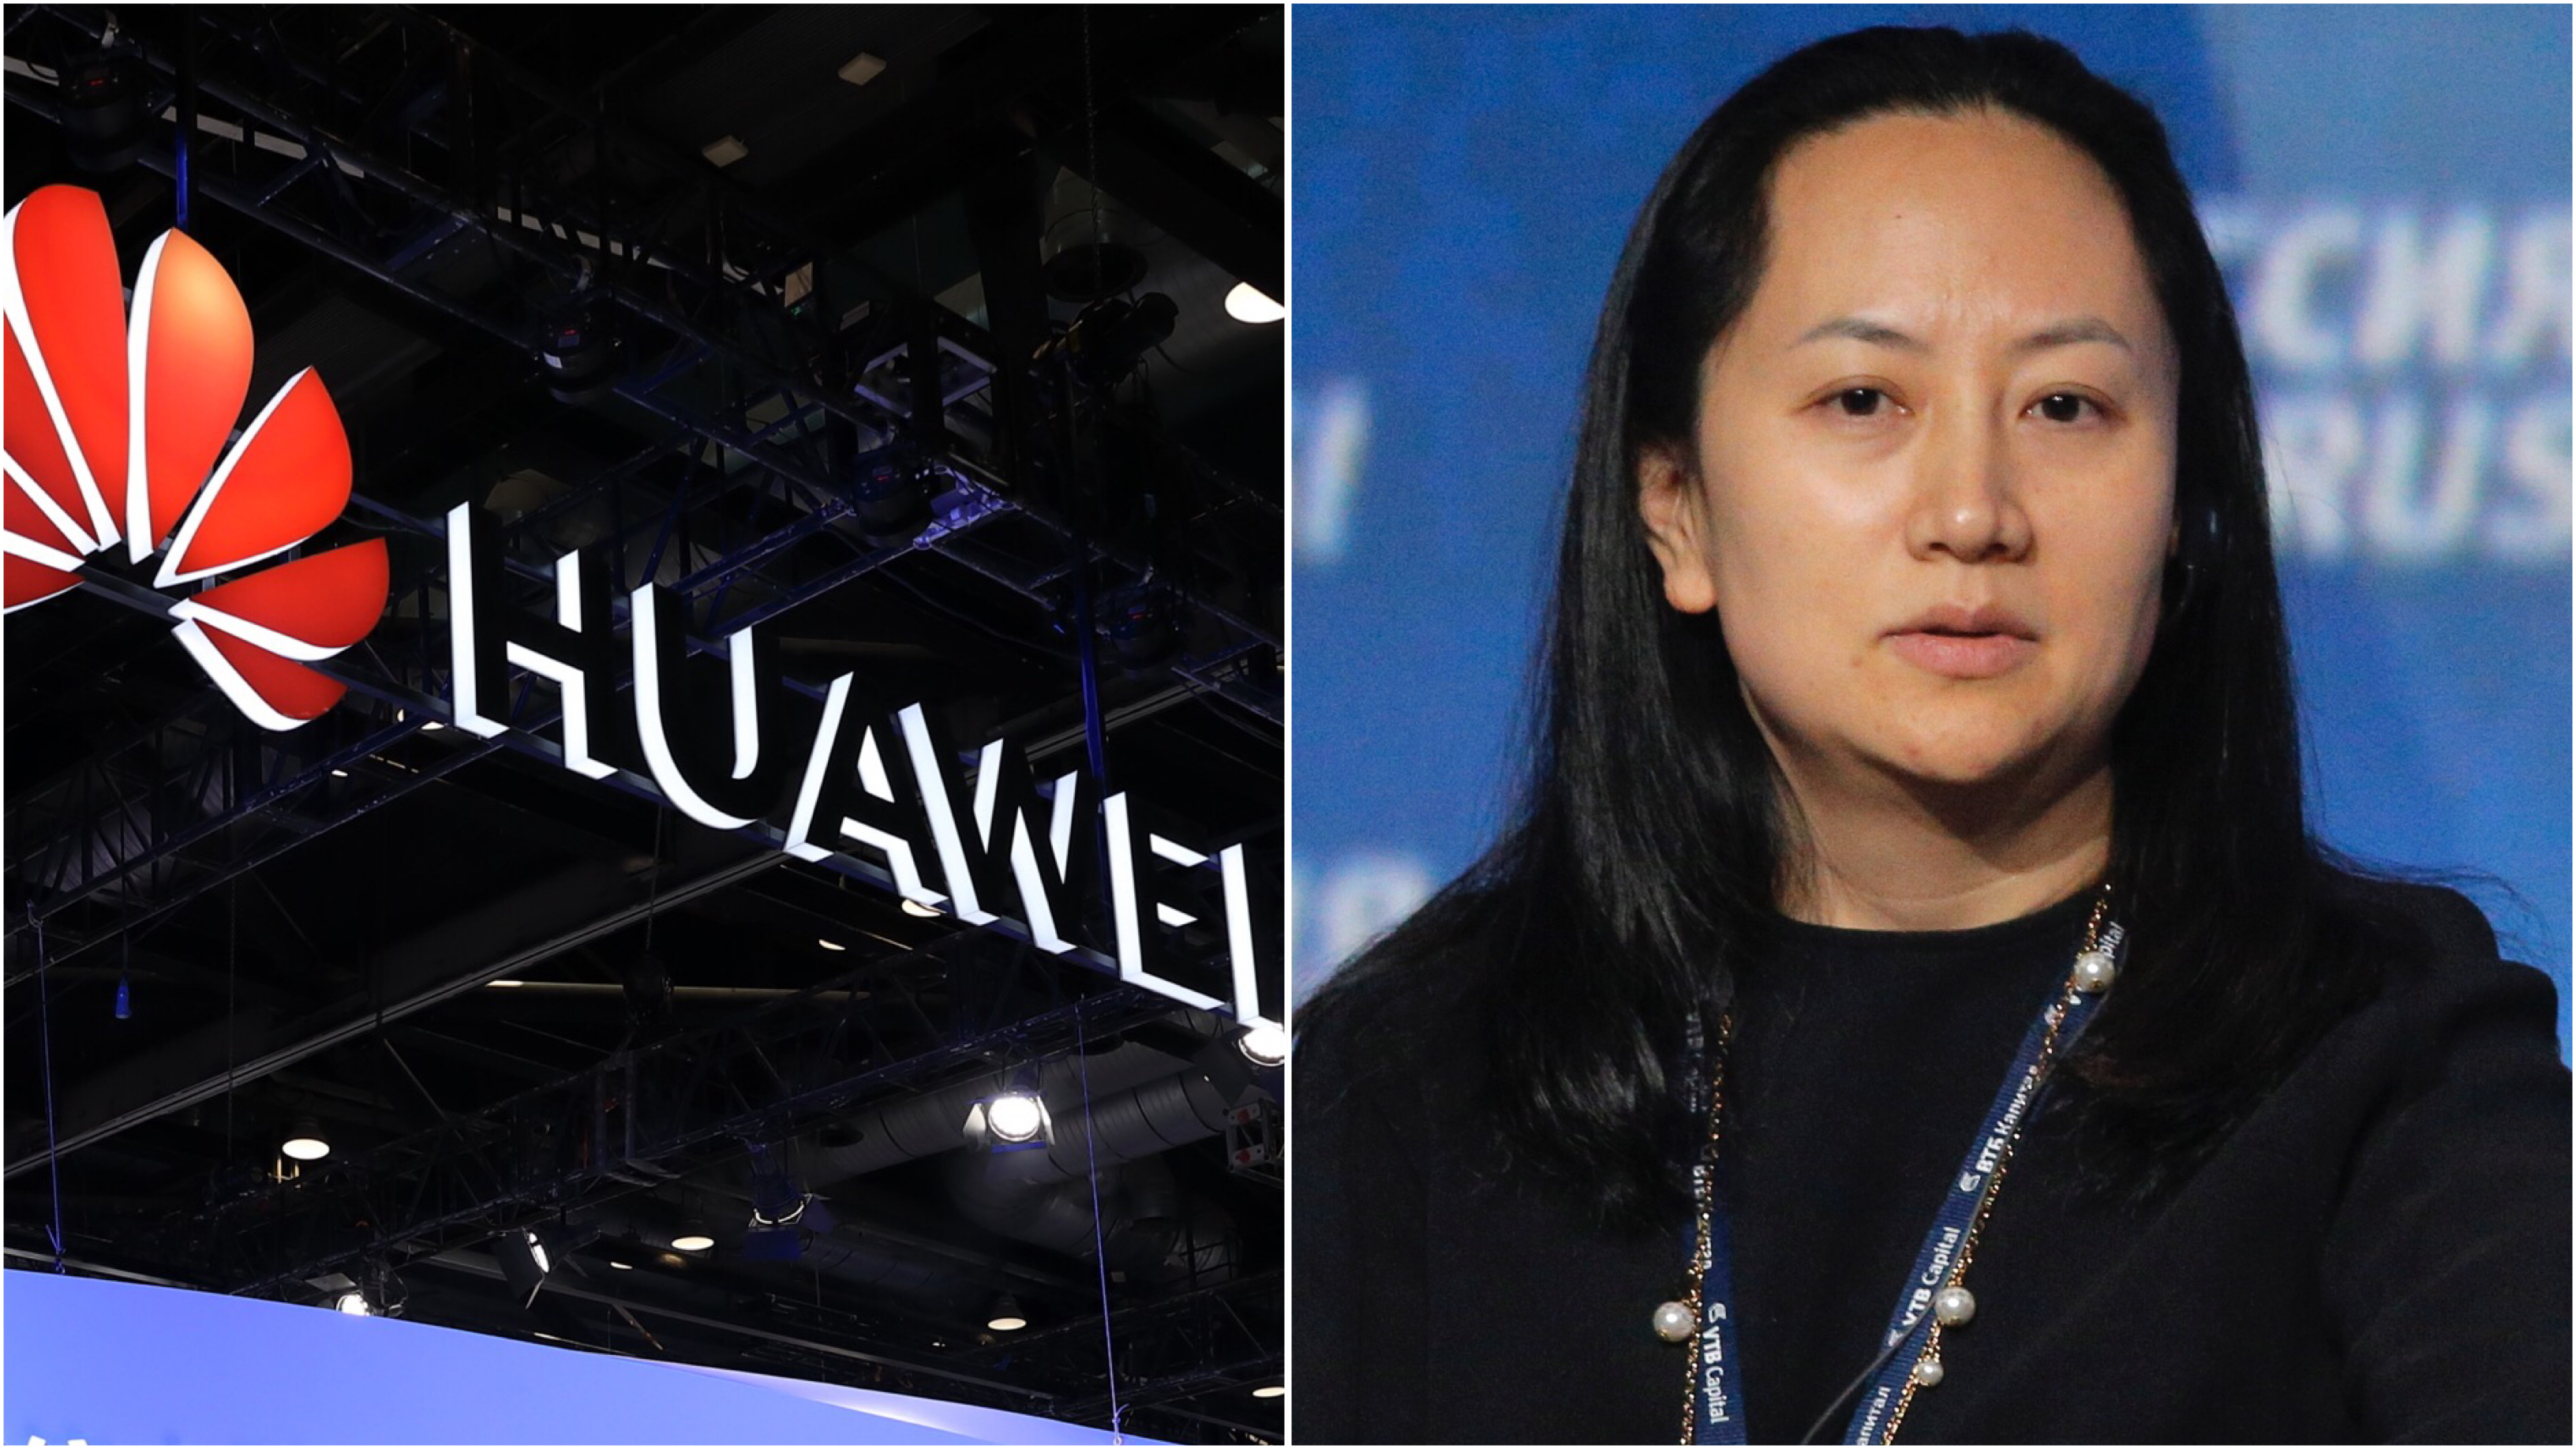 Meng Wanzhou, the CFO of tech giant Huawei has been arrested in Canada.